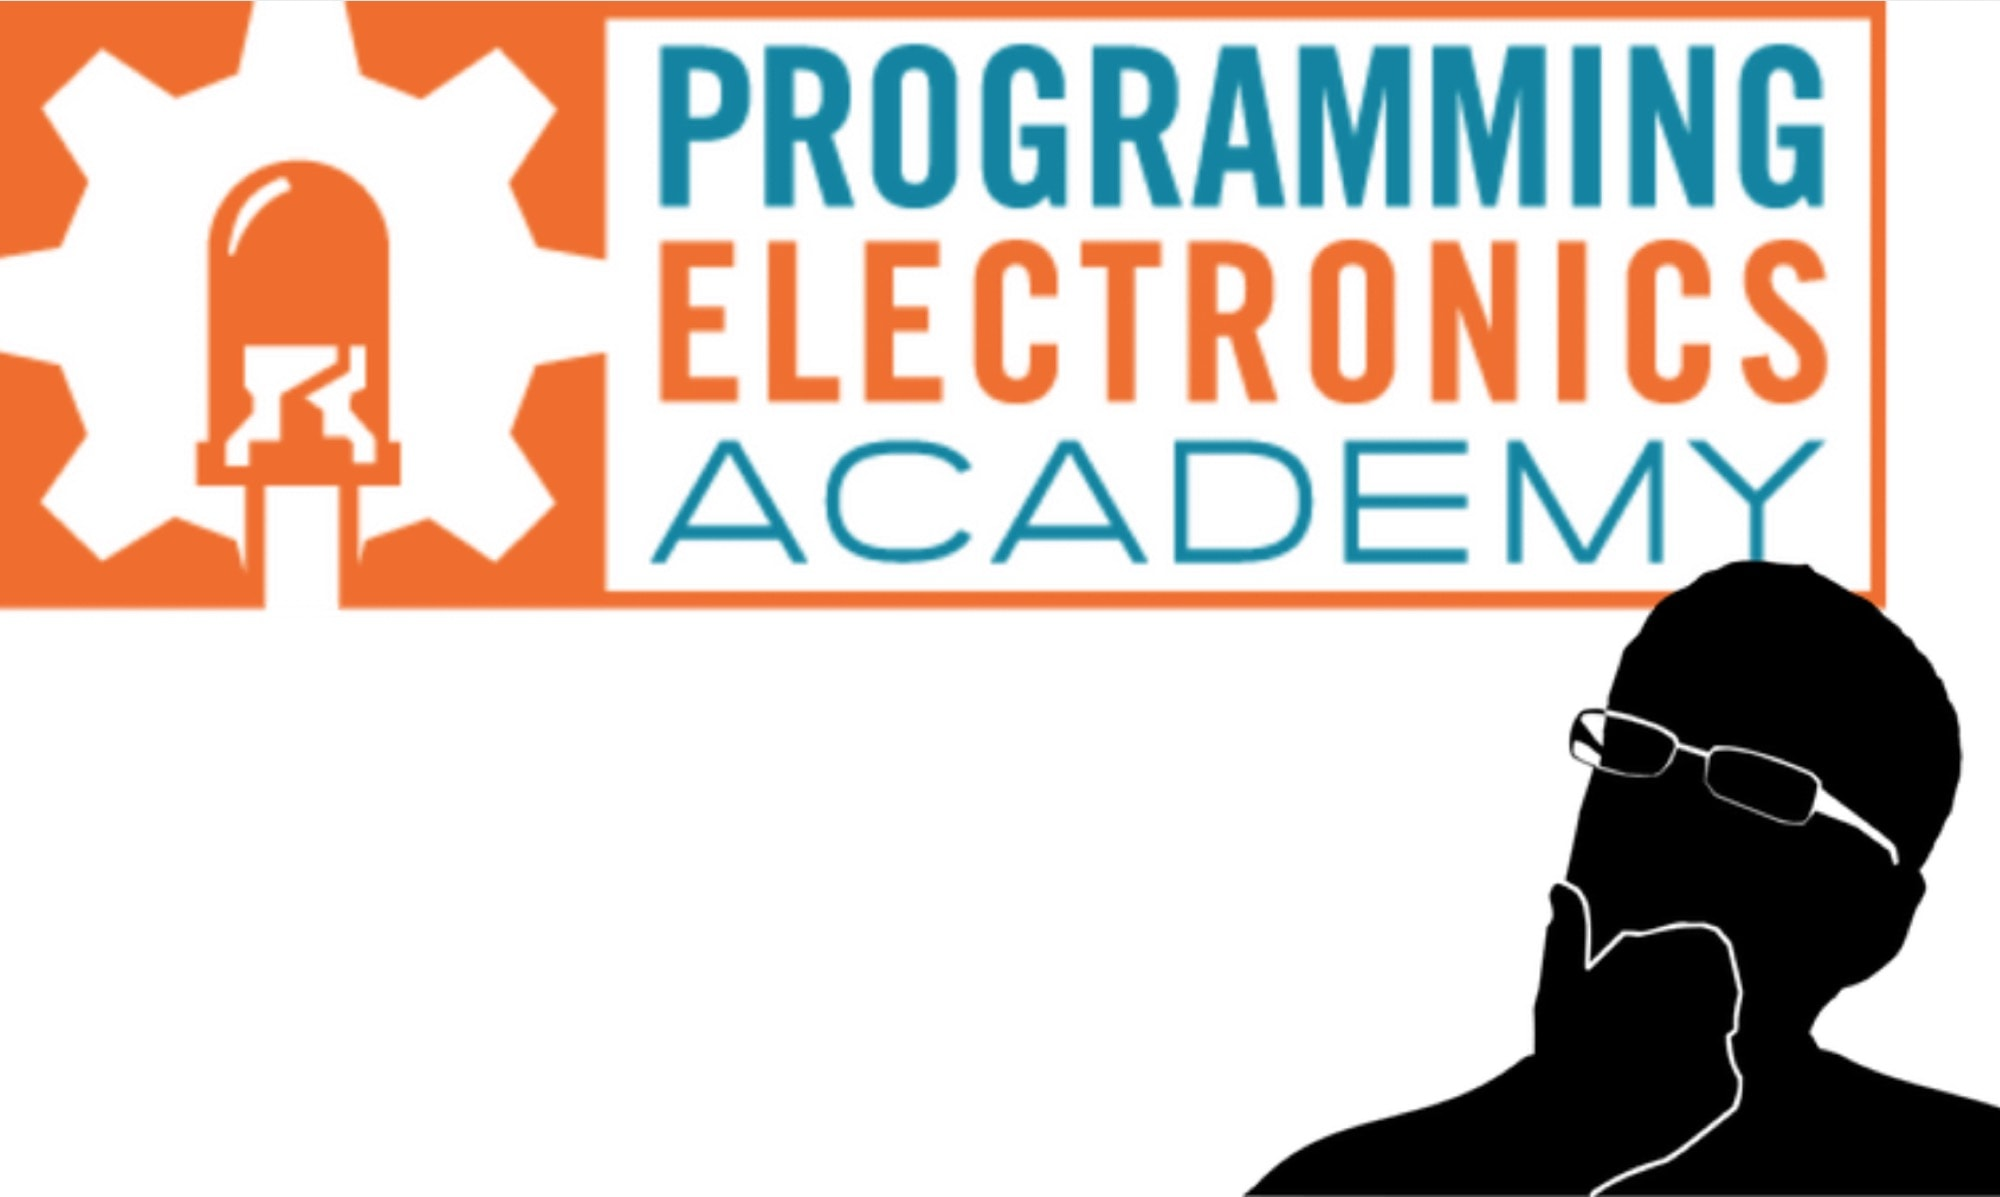 Programming Electronics Academy Case Study title image